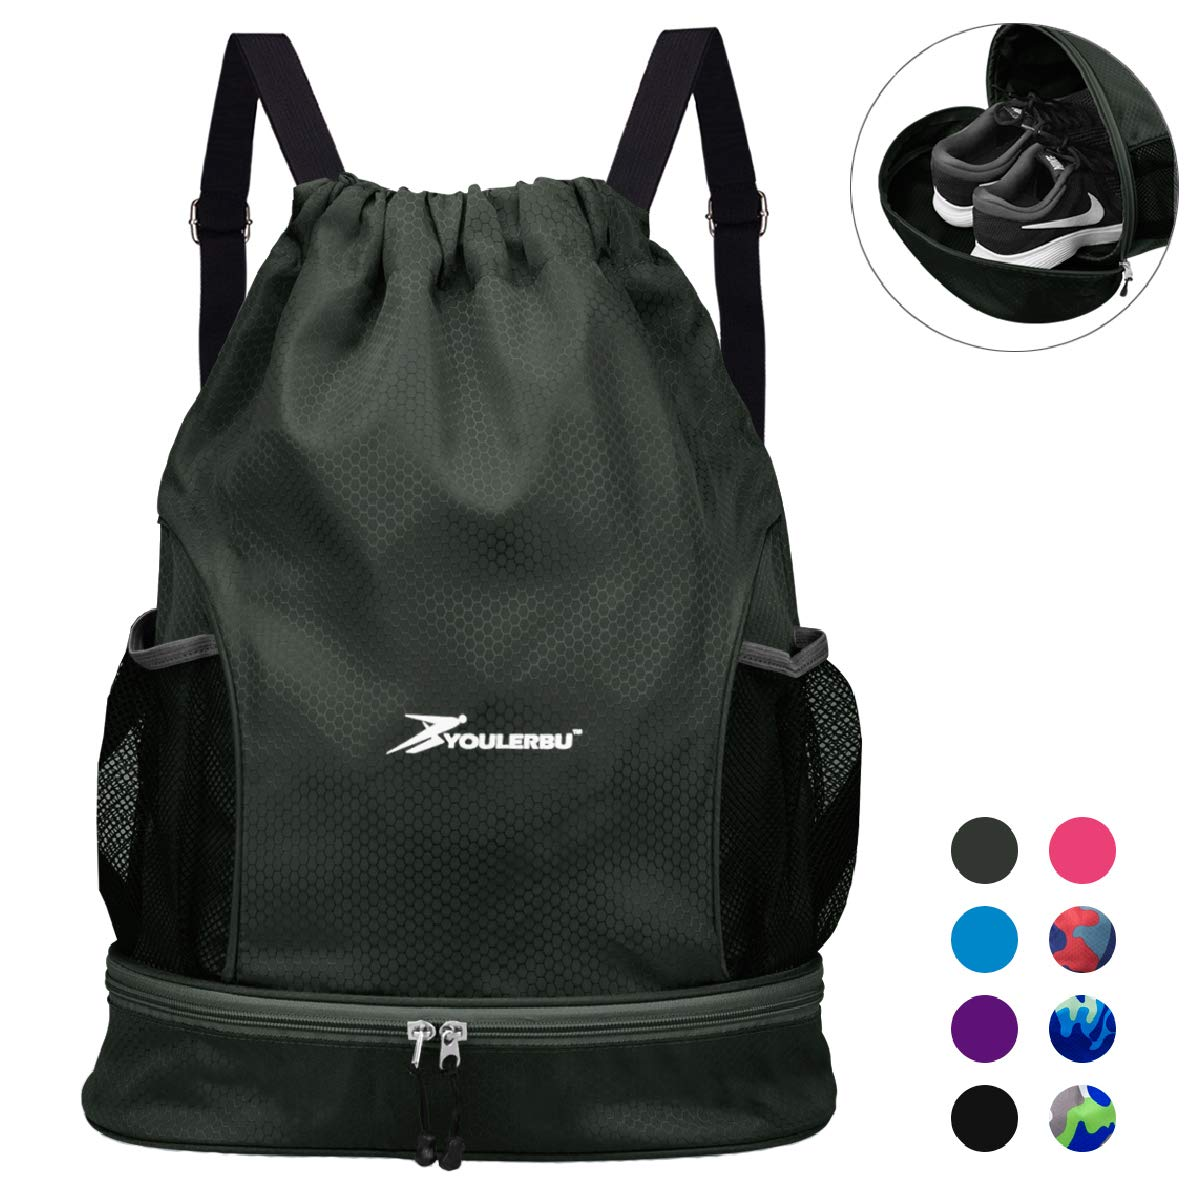 YOULERBU Waterproof Drawstring Backpack Bag with Shoe Compartment, Sports Gym Sackpack for Men Women